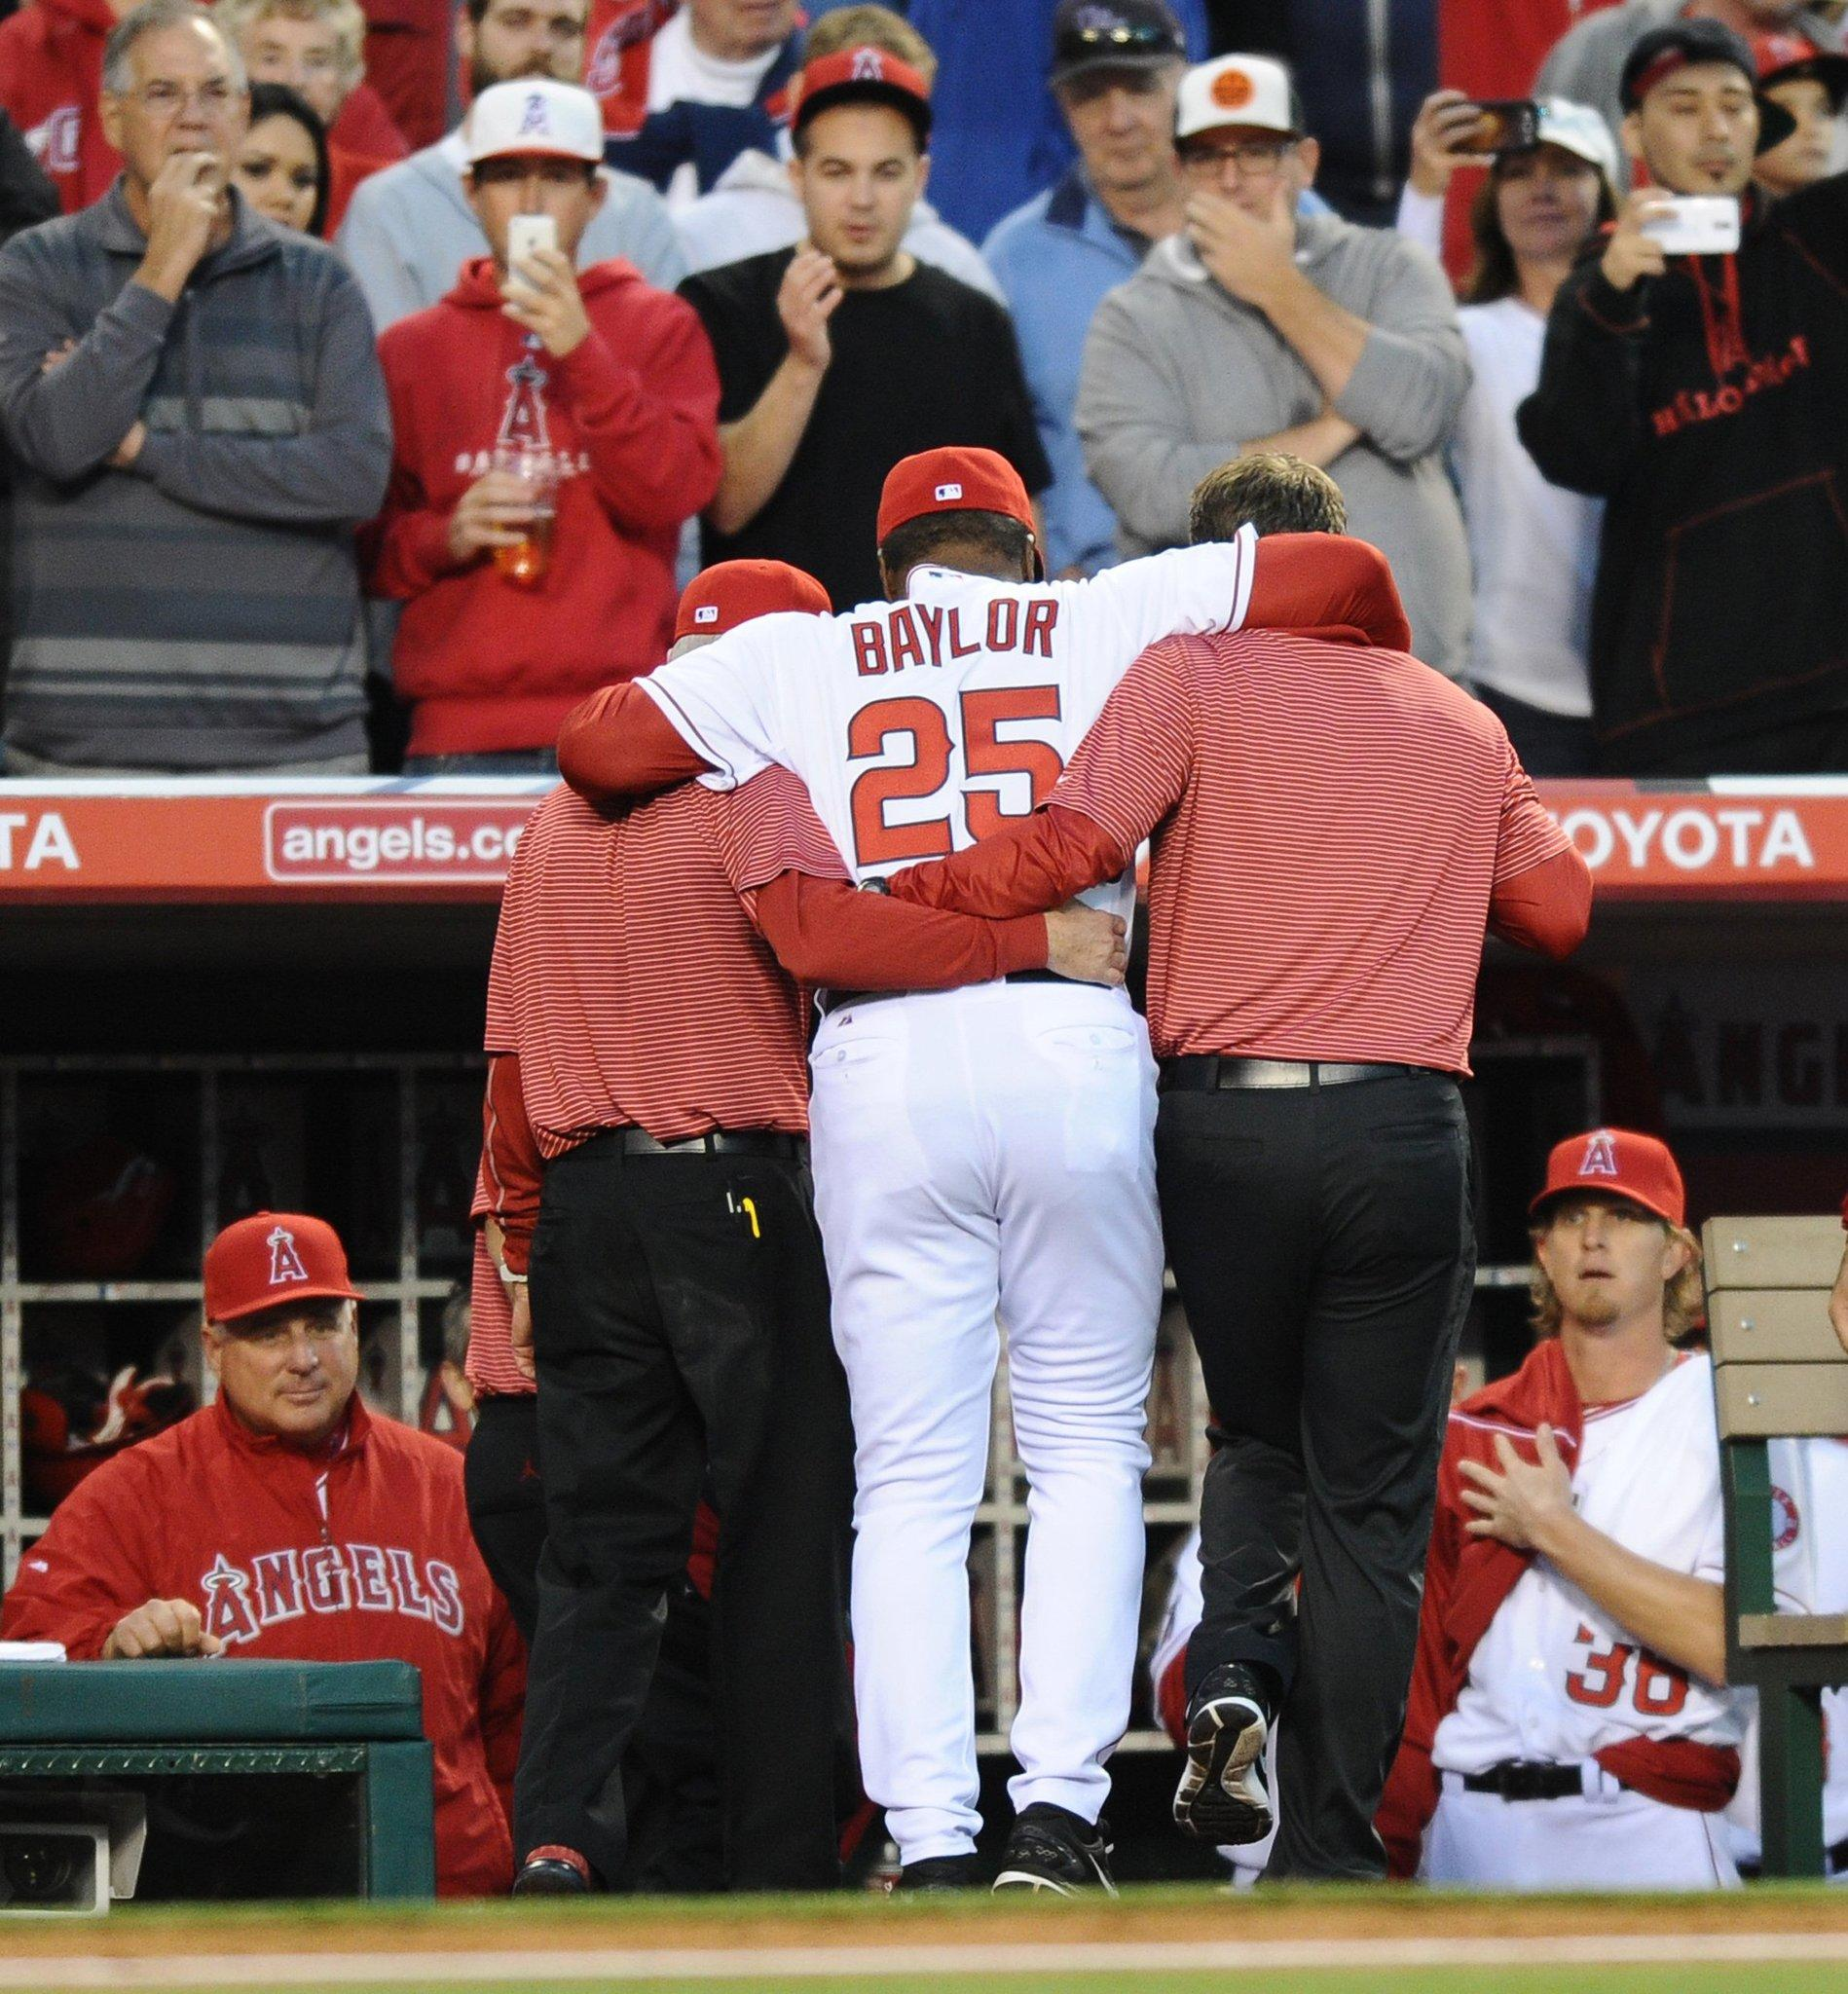 Angels coach Don Baylor injured his leg while catching the first pitch on Opening Day.